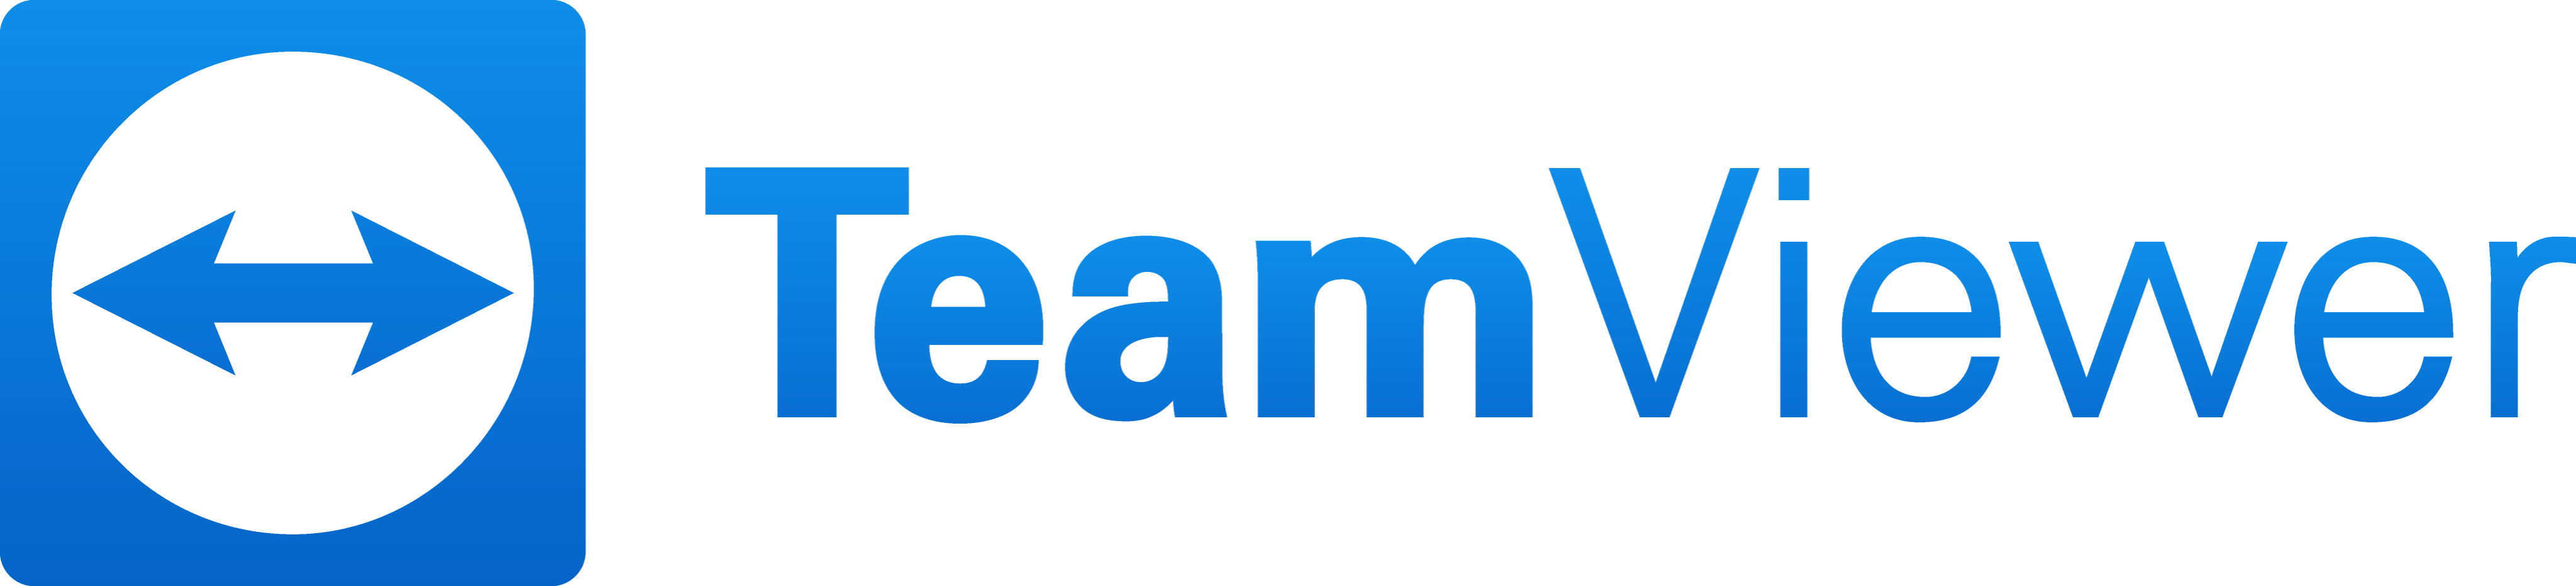 TeamViewer Demonstrates Commitment to Channel with New Partner Program, Portal